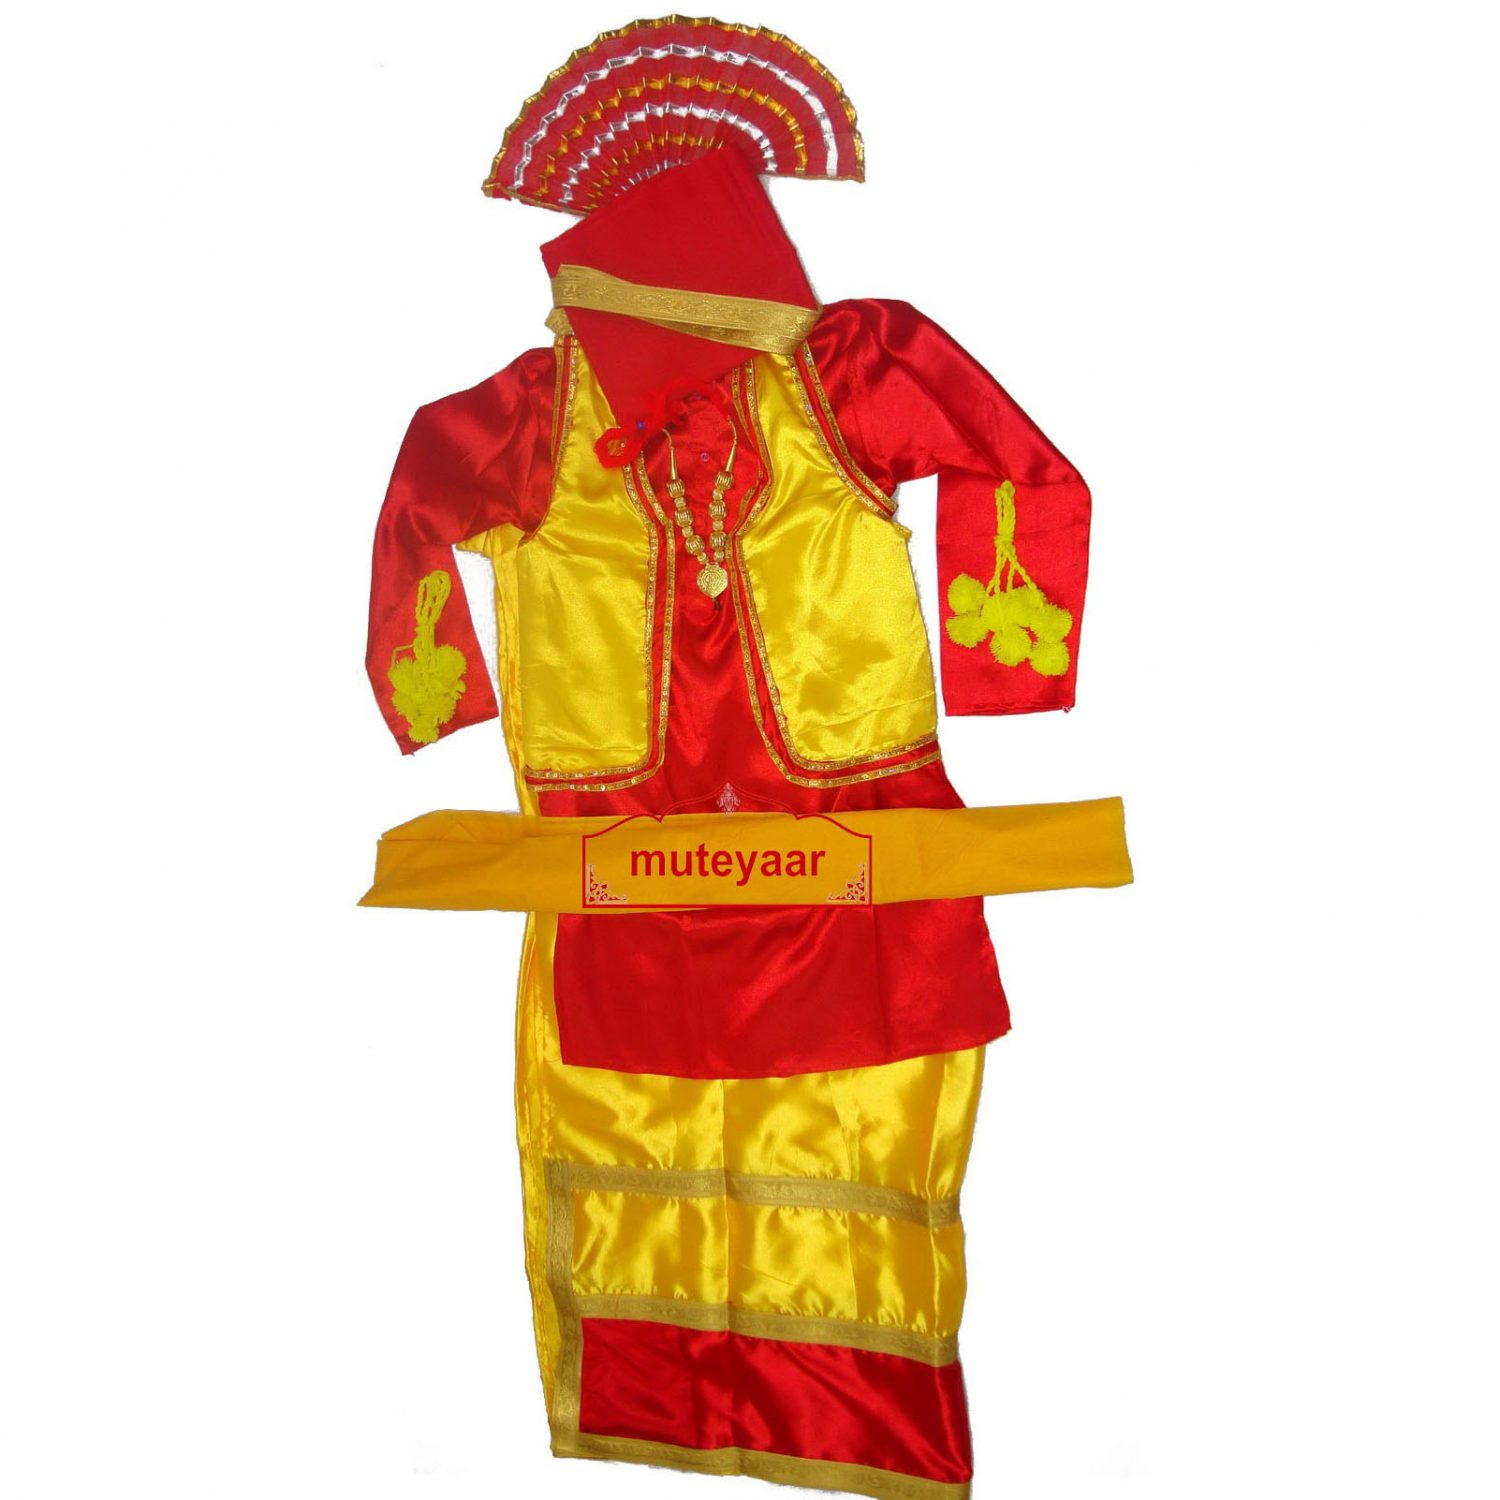 Red / Yellow Bhangra dance costume outfit dress - custom made 1